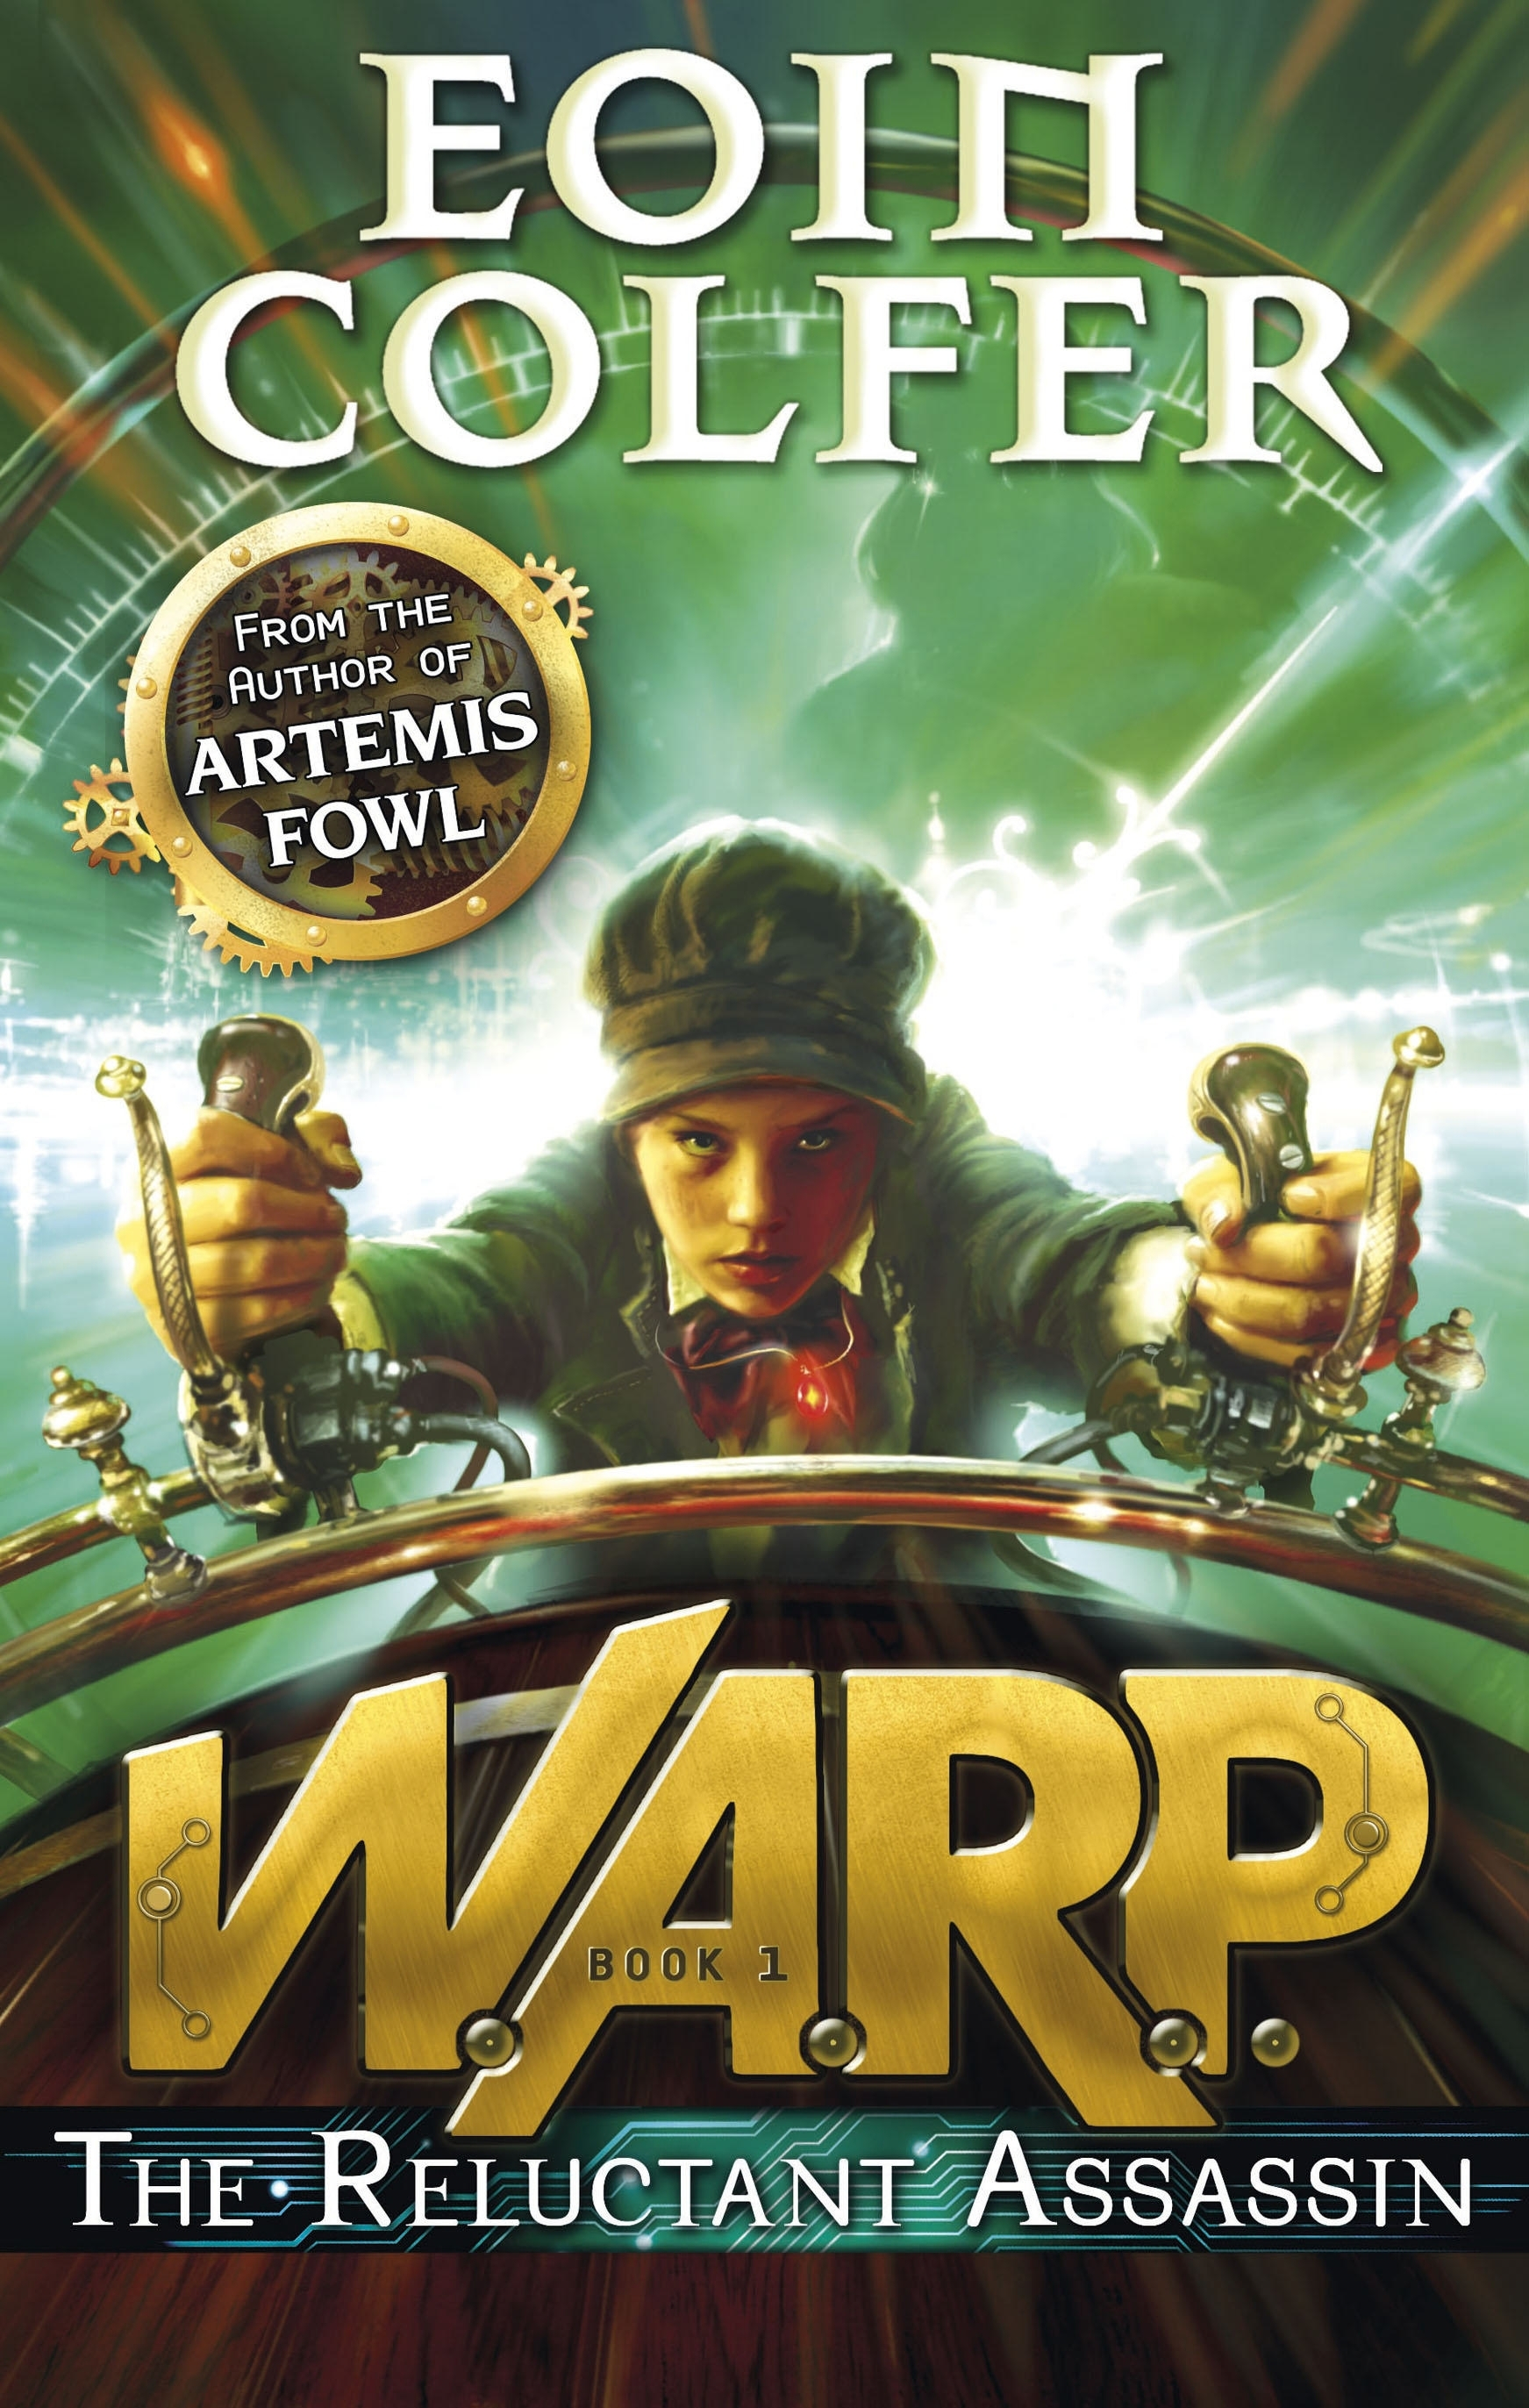 W.A.R.P. The Reluctant Assassin by Eoin Colfer